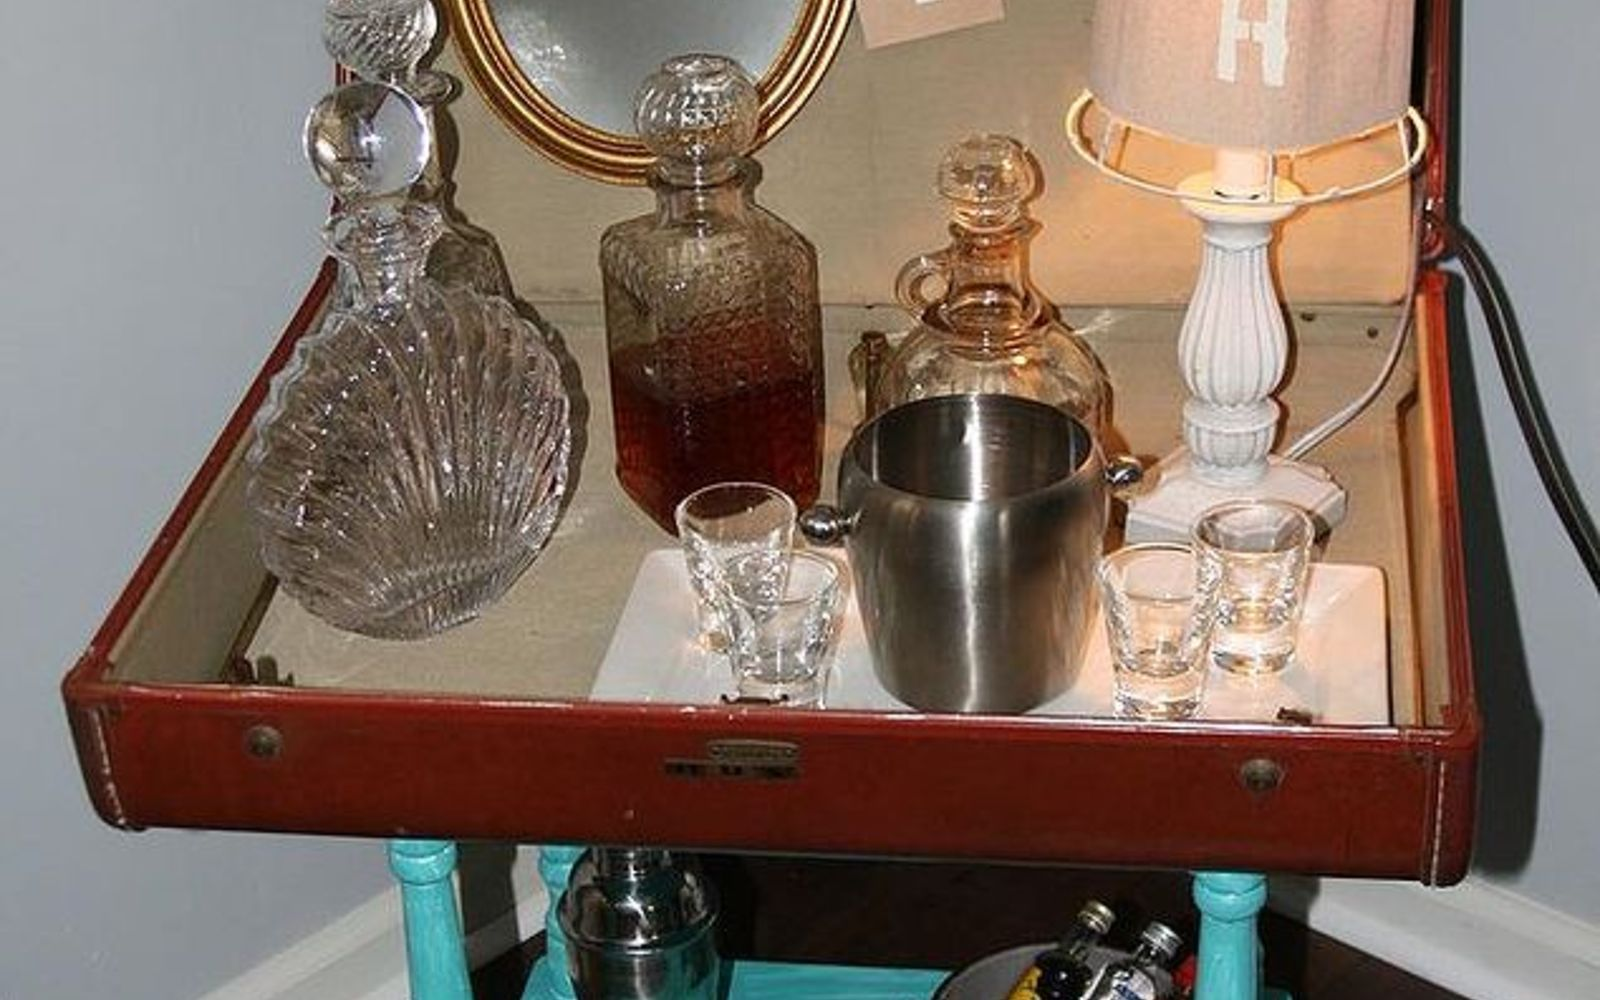 s don t throw out your old suitcase before you see these 15 clever ideas, Use it as a vintage bar